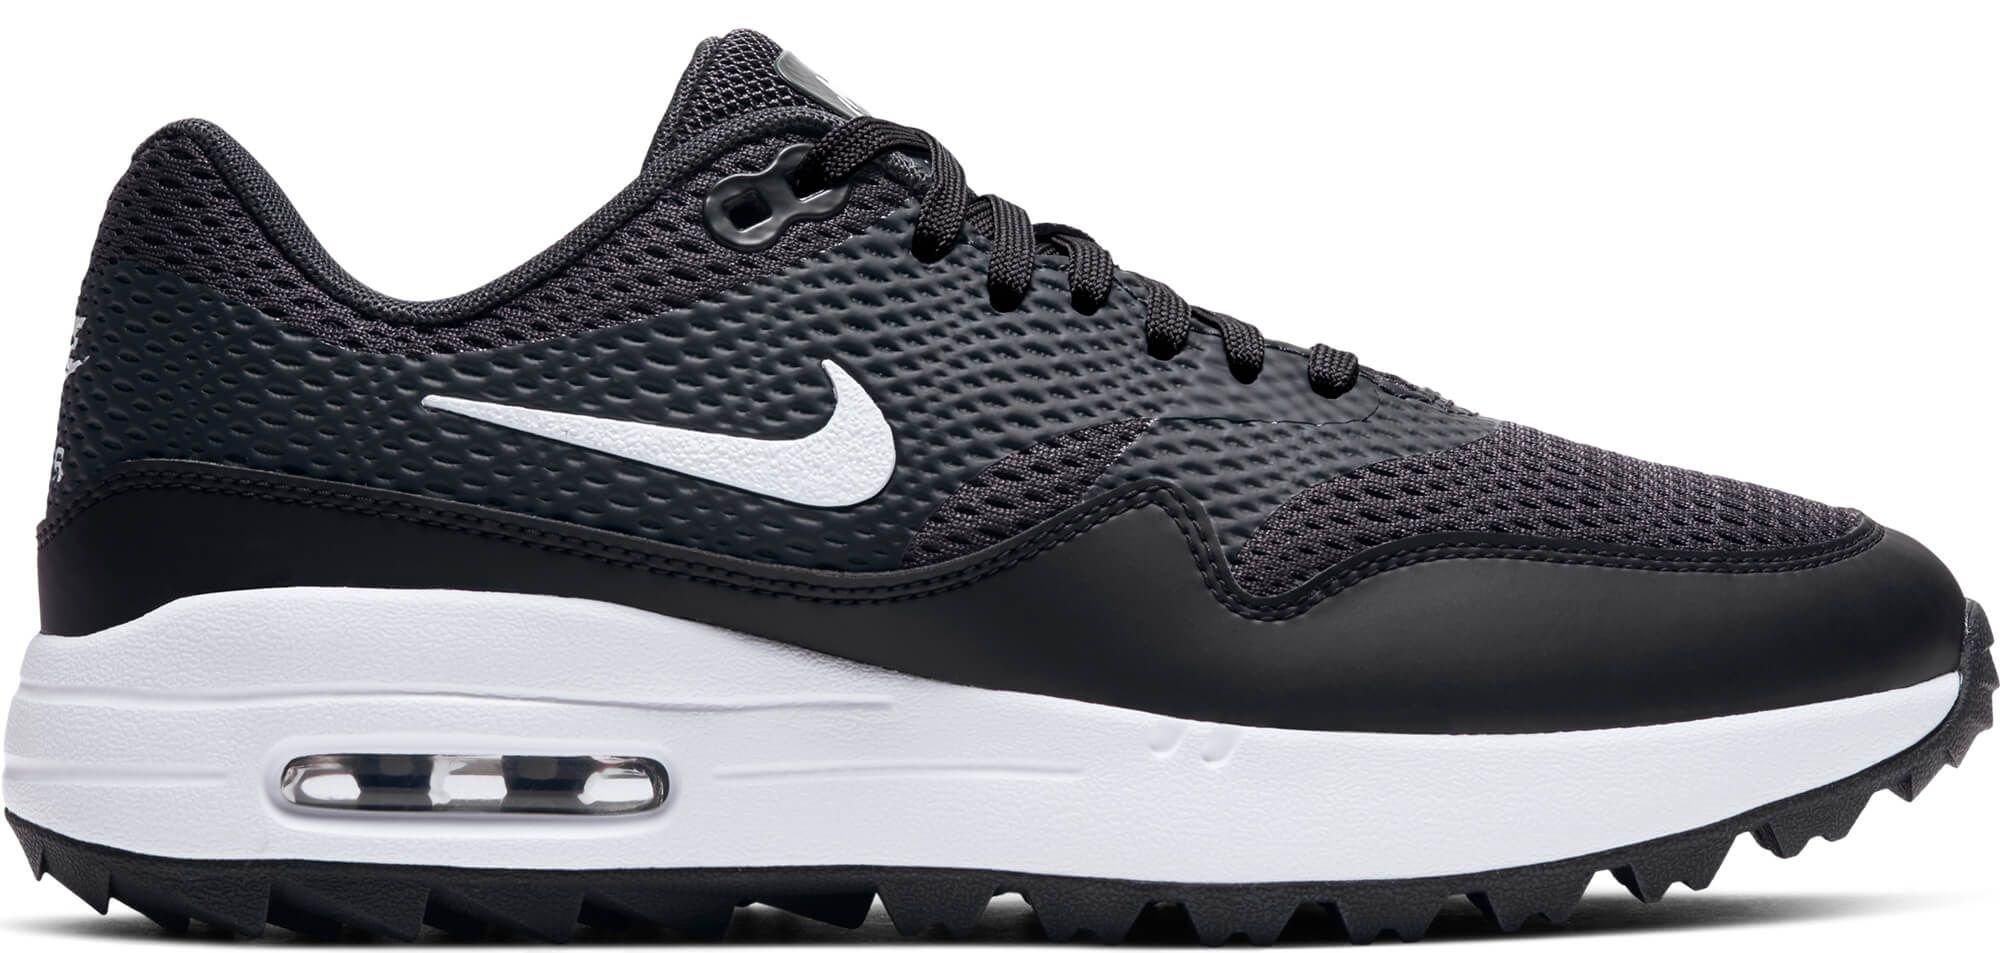 muerte Desmenuzar Además  Nike Women's Air Max 1 G Golf Shoes Black/White/Anthracite - Carl's Golfland